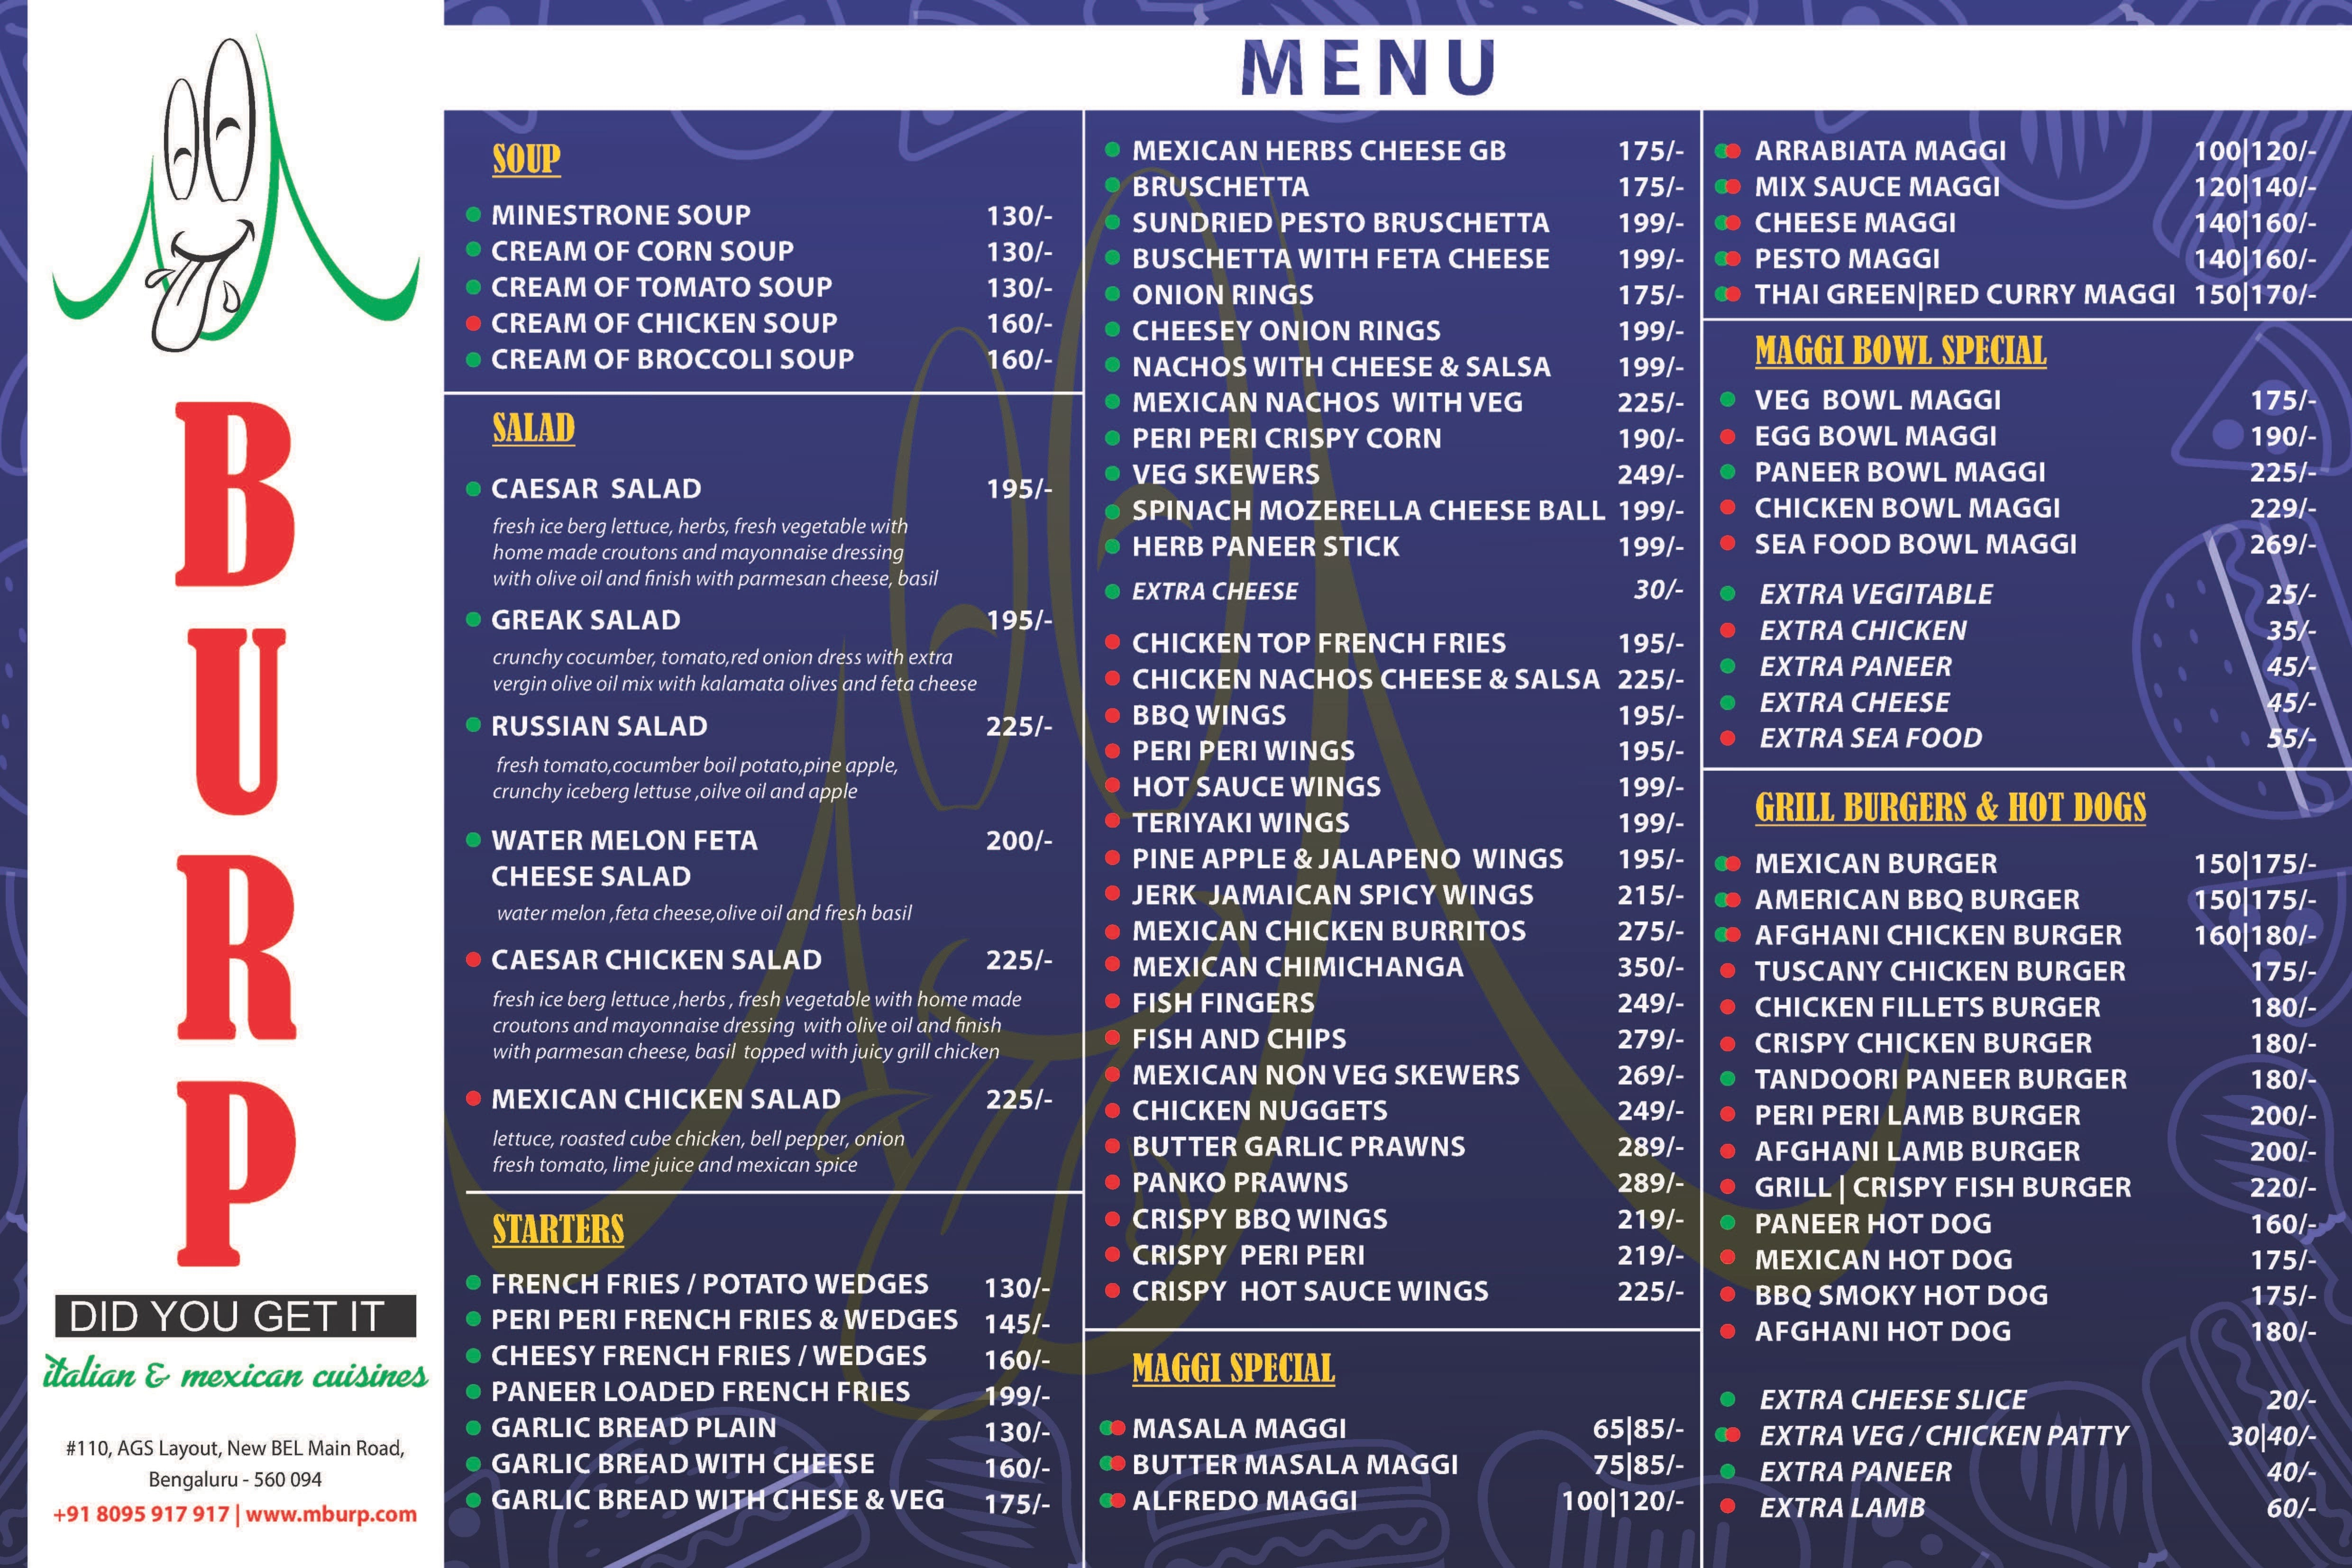 Burp Menu, Menu for Burp, New BEL Road, Bangalore - Zomato